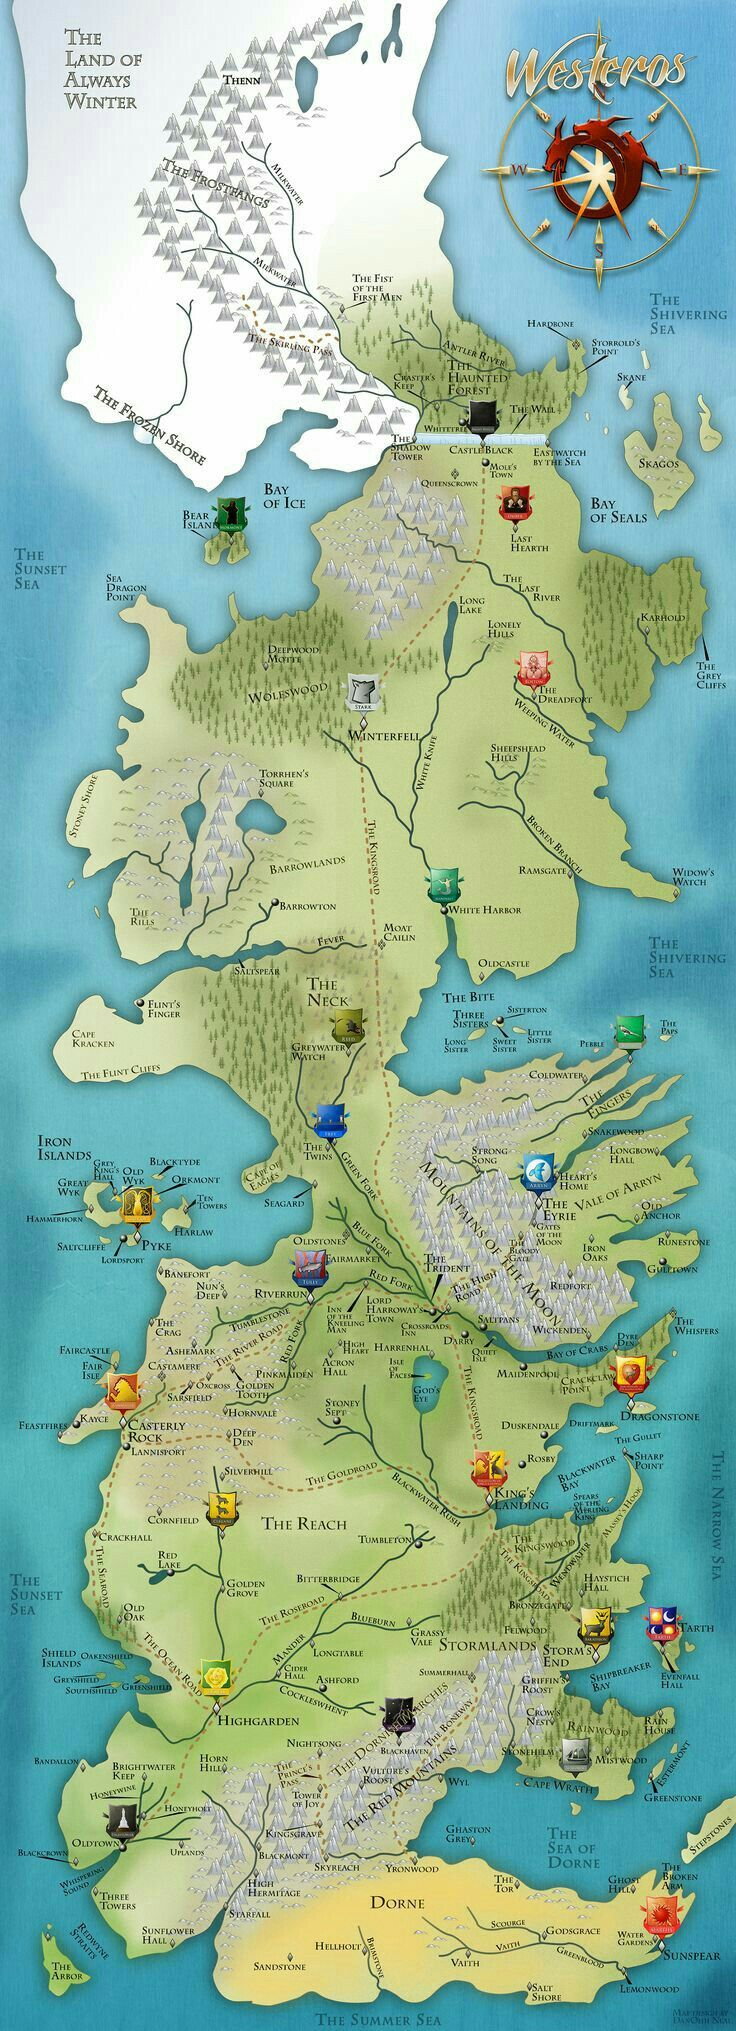 17 best Maps from Books images on Pinterest | Fantasy map, Maps and ...